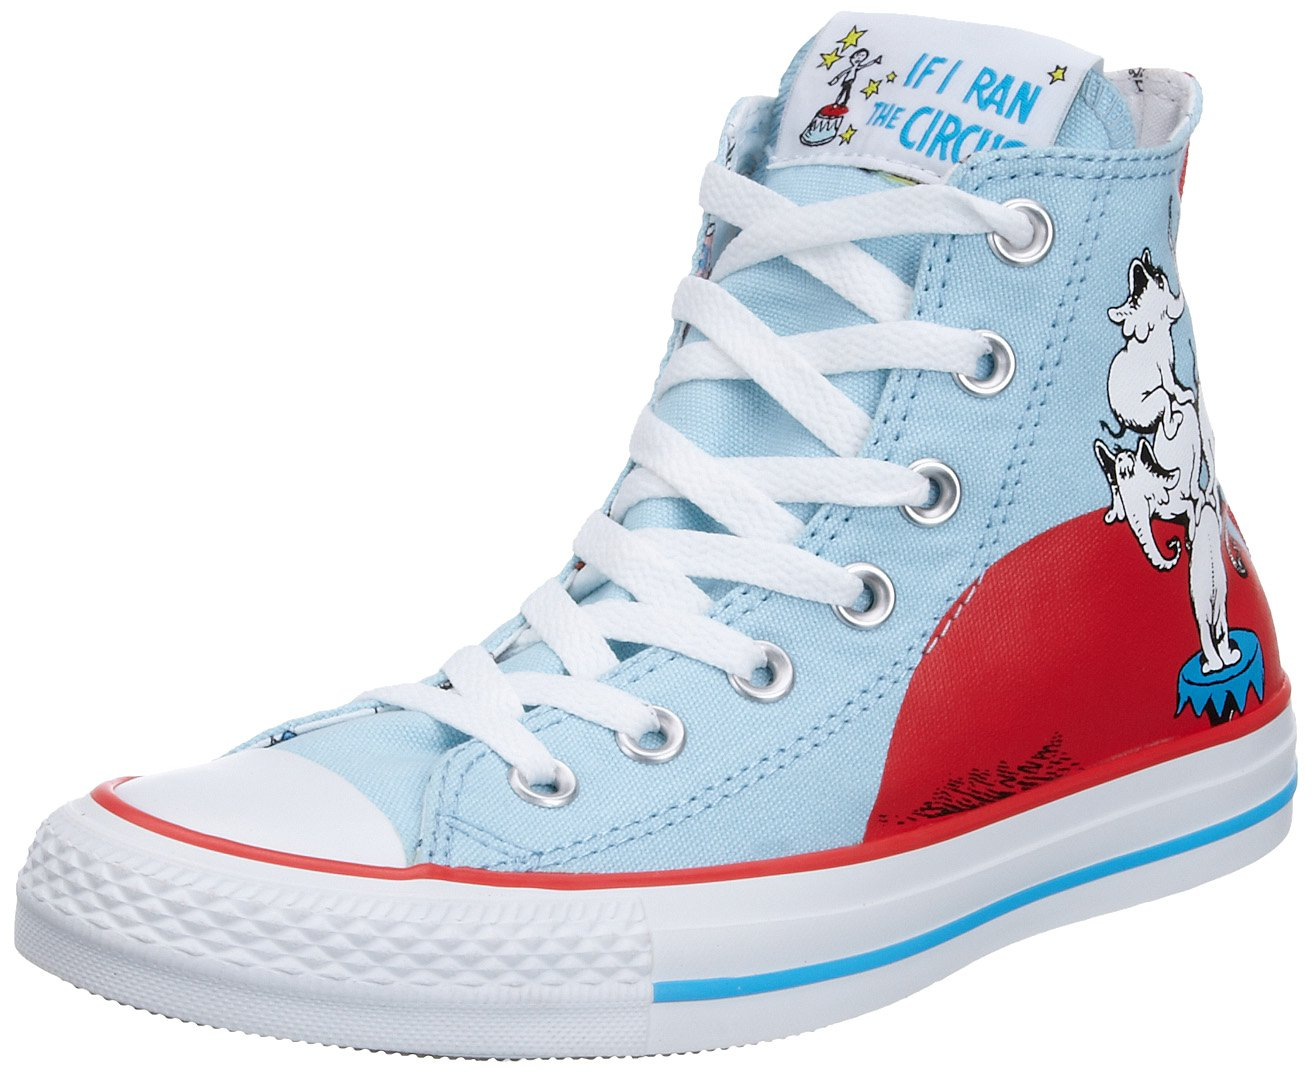 Converse Adulte Sport Lifestyle Lacets Lacets Mixte Adulte Blue/Red/White Bleu - Blue/Red/White f15d6e9 - fast-weightloss-diet.space